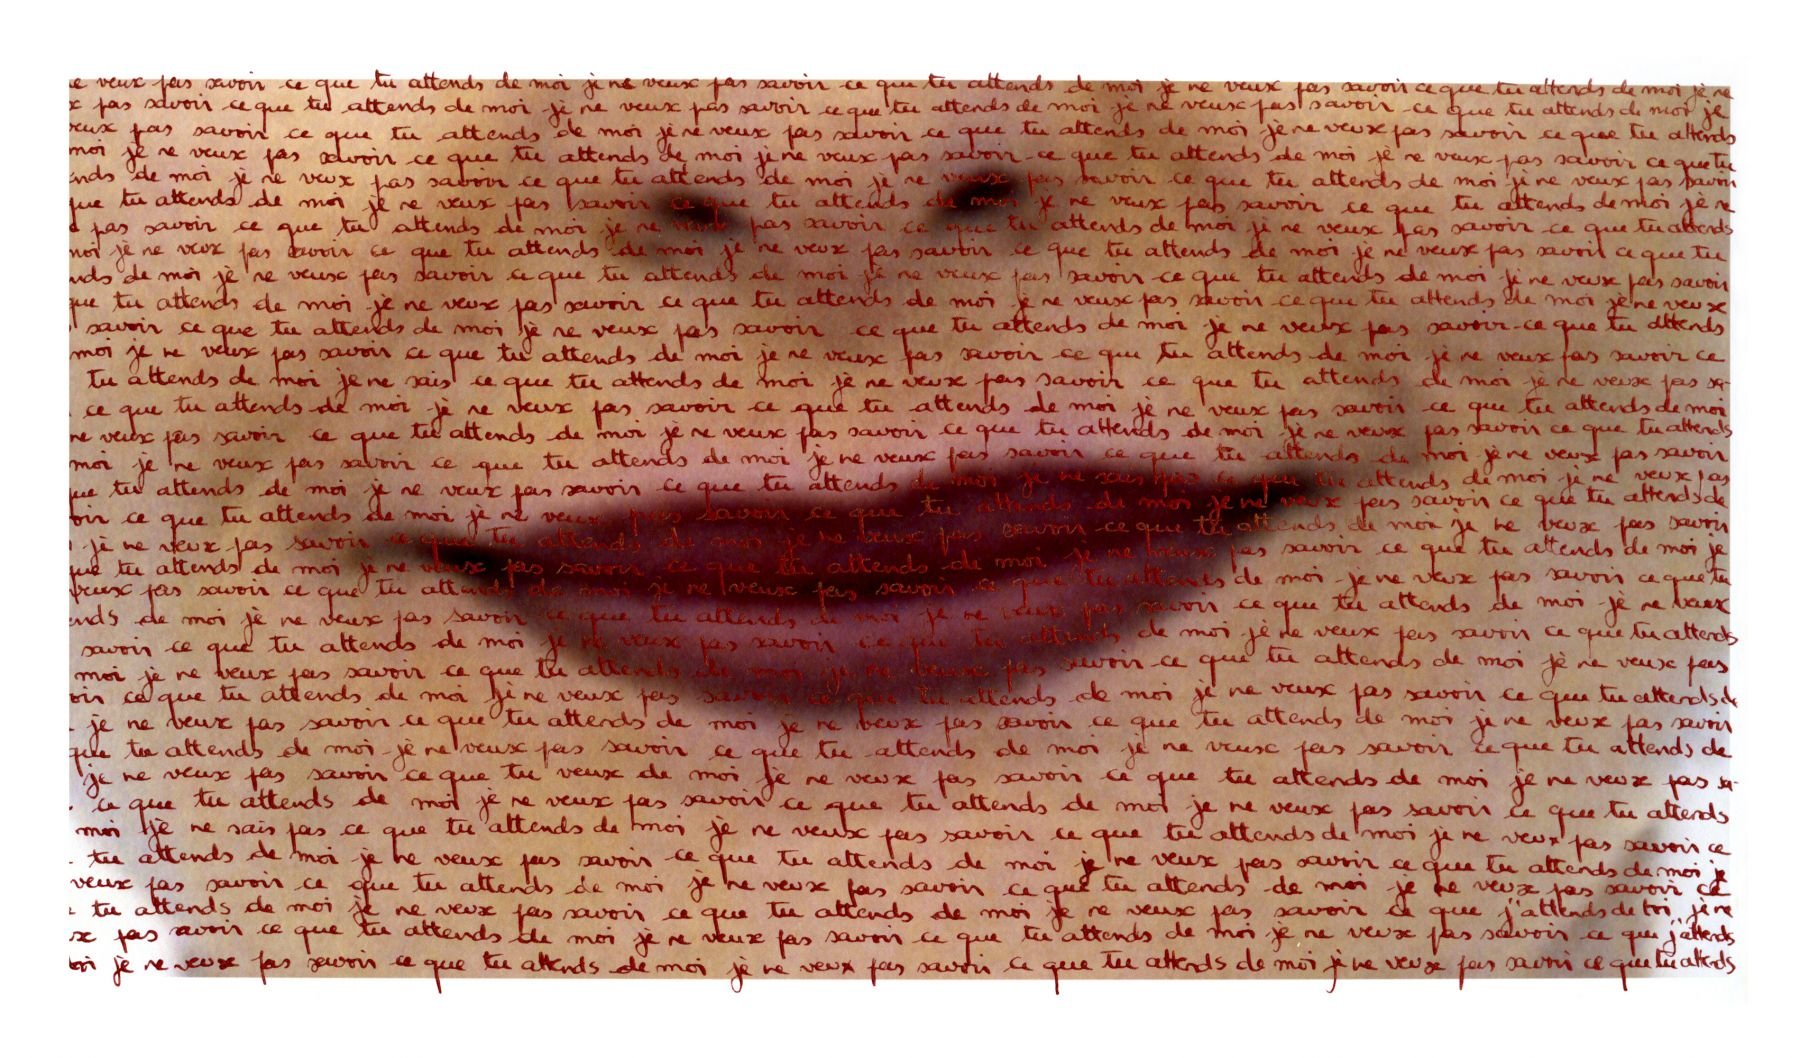 Carolle Bénitah, What cannot be said, Ce qu'on ne peut pas dire, lips, sentences, handwritten, 2013, Sous Les Etoiles Gallery, je ne veux pas savoir ce que tu attends de moi, I do not want to know what you want from me